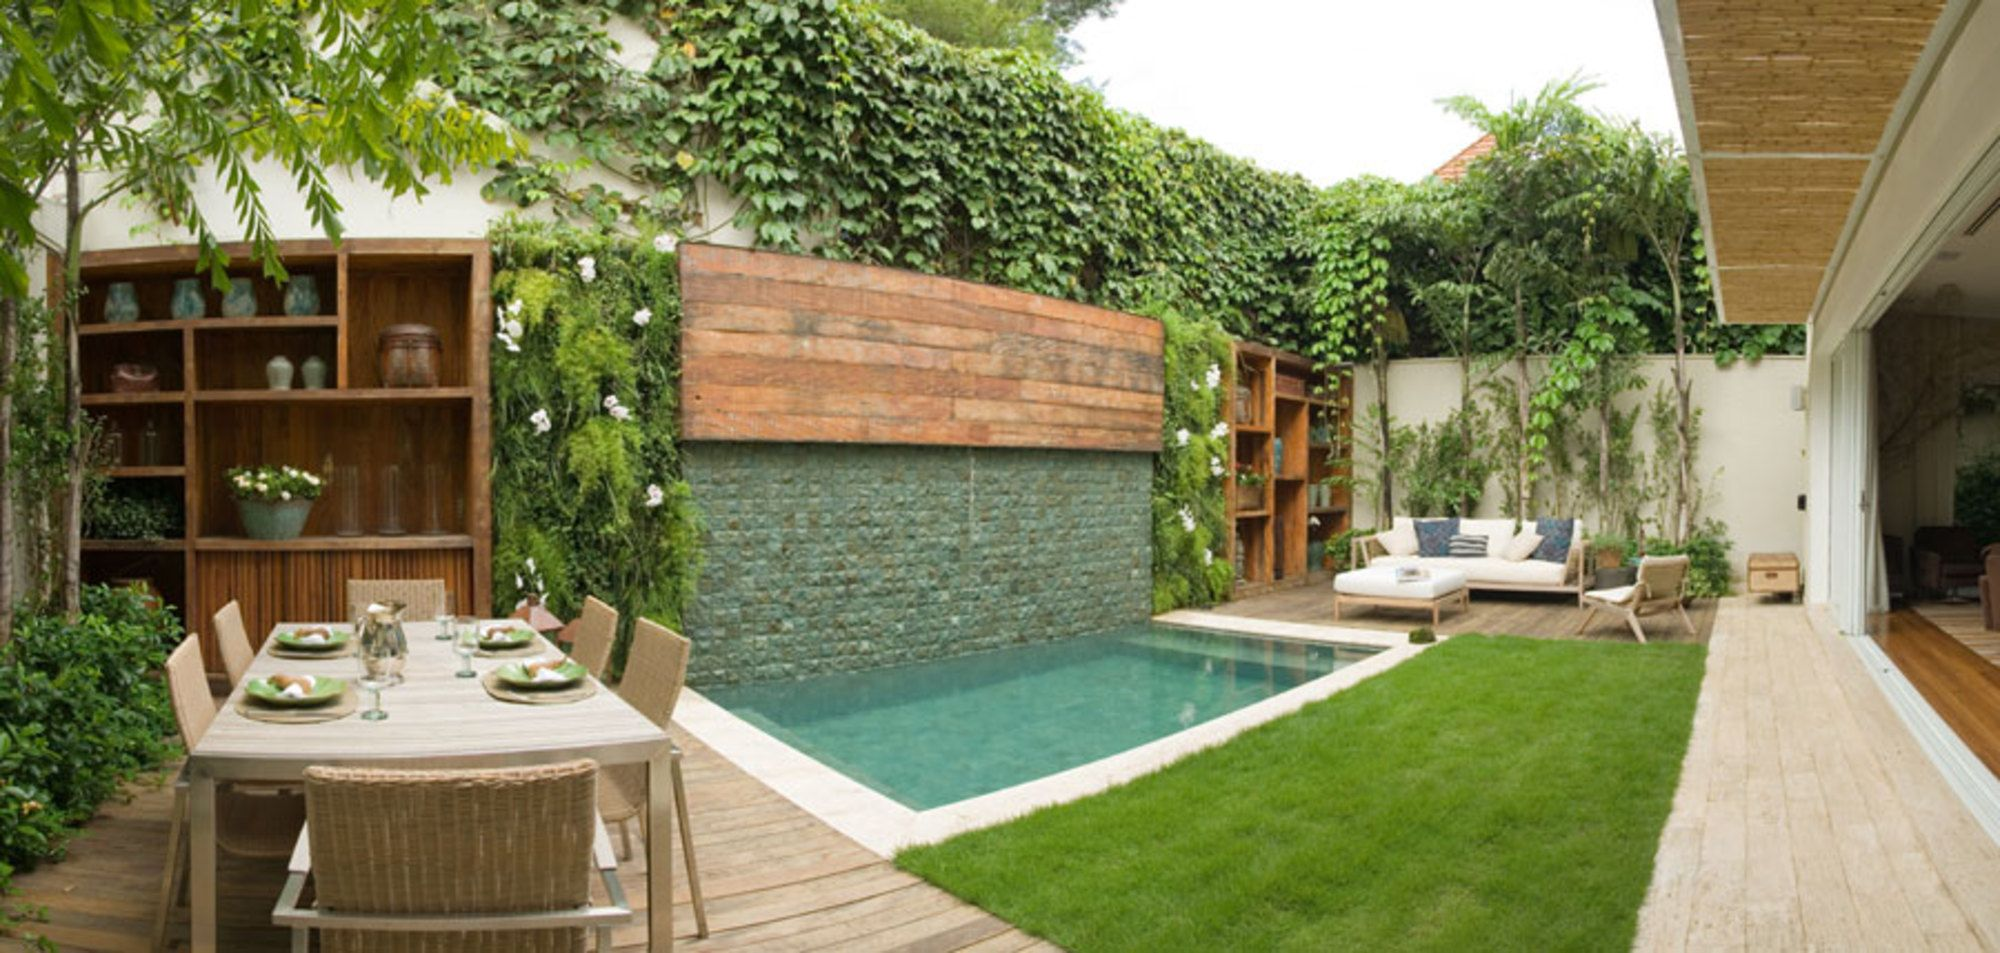 O sis particular casas pinterest garten pool im for Pool dekoration